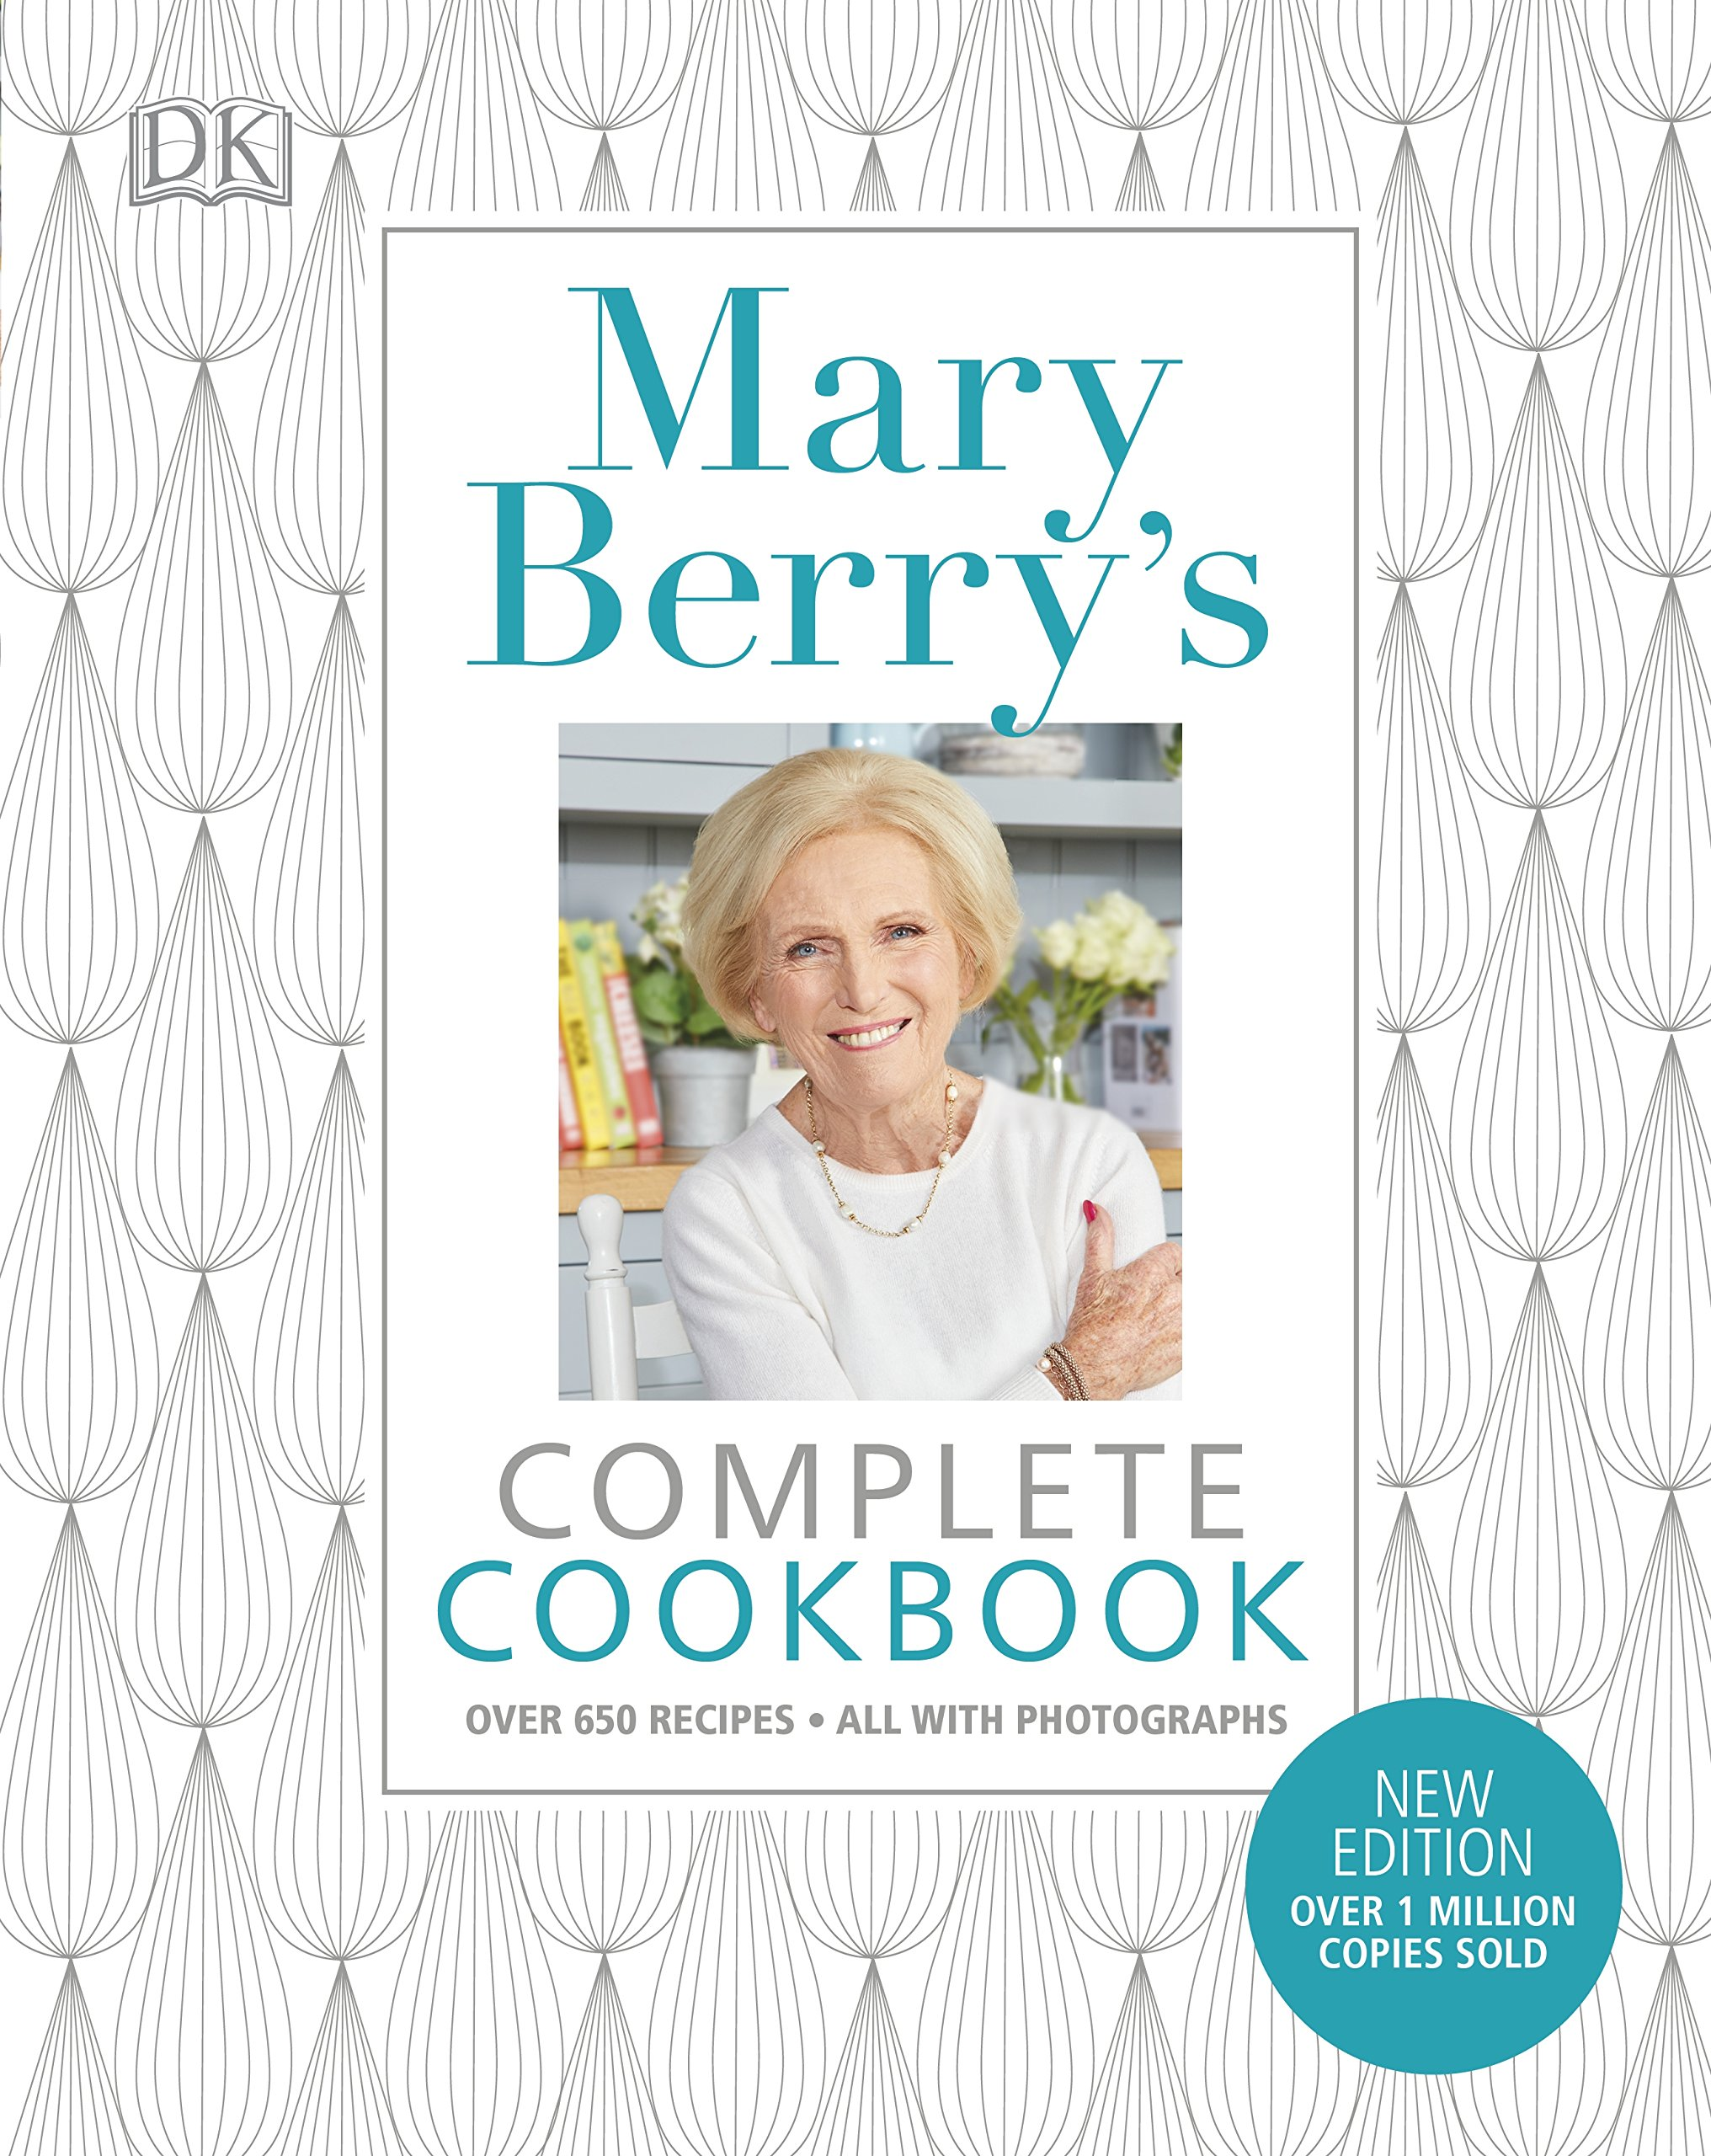 Mary Berry's Complete Cookbook: Over 650 recipes: Amazon.co.uk: Mary Berry:  9780241286128: Books